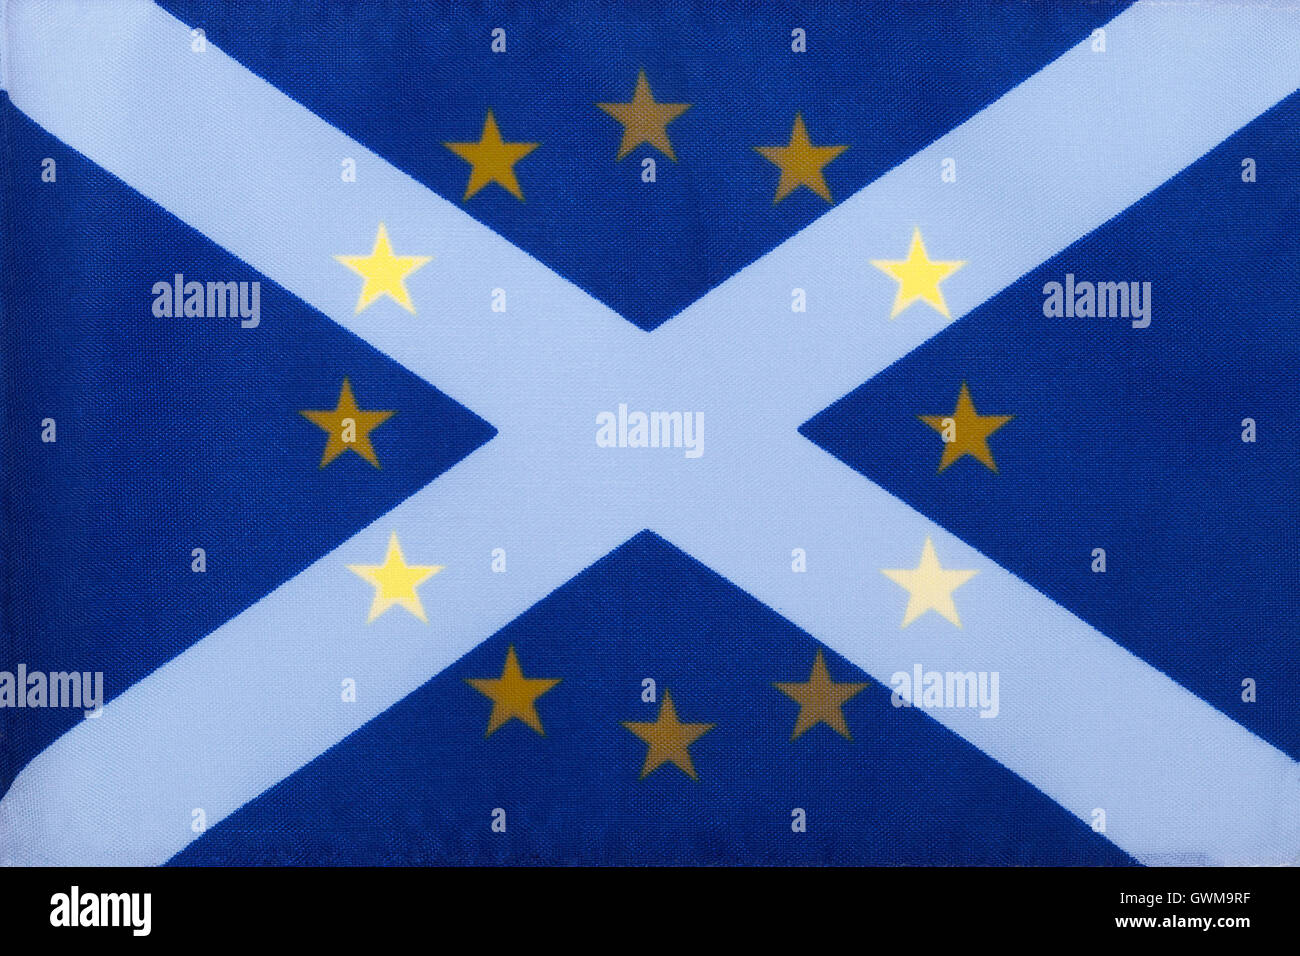 The flag of the European Union superimposed on the St Andrews flag of Scotland - Stock Image